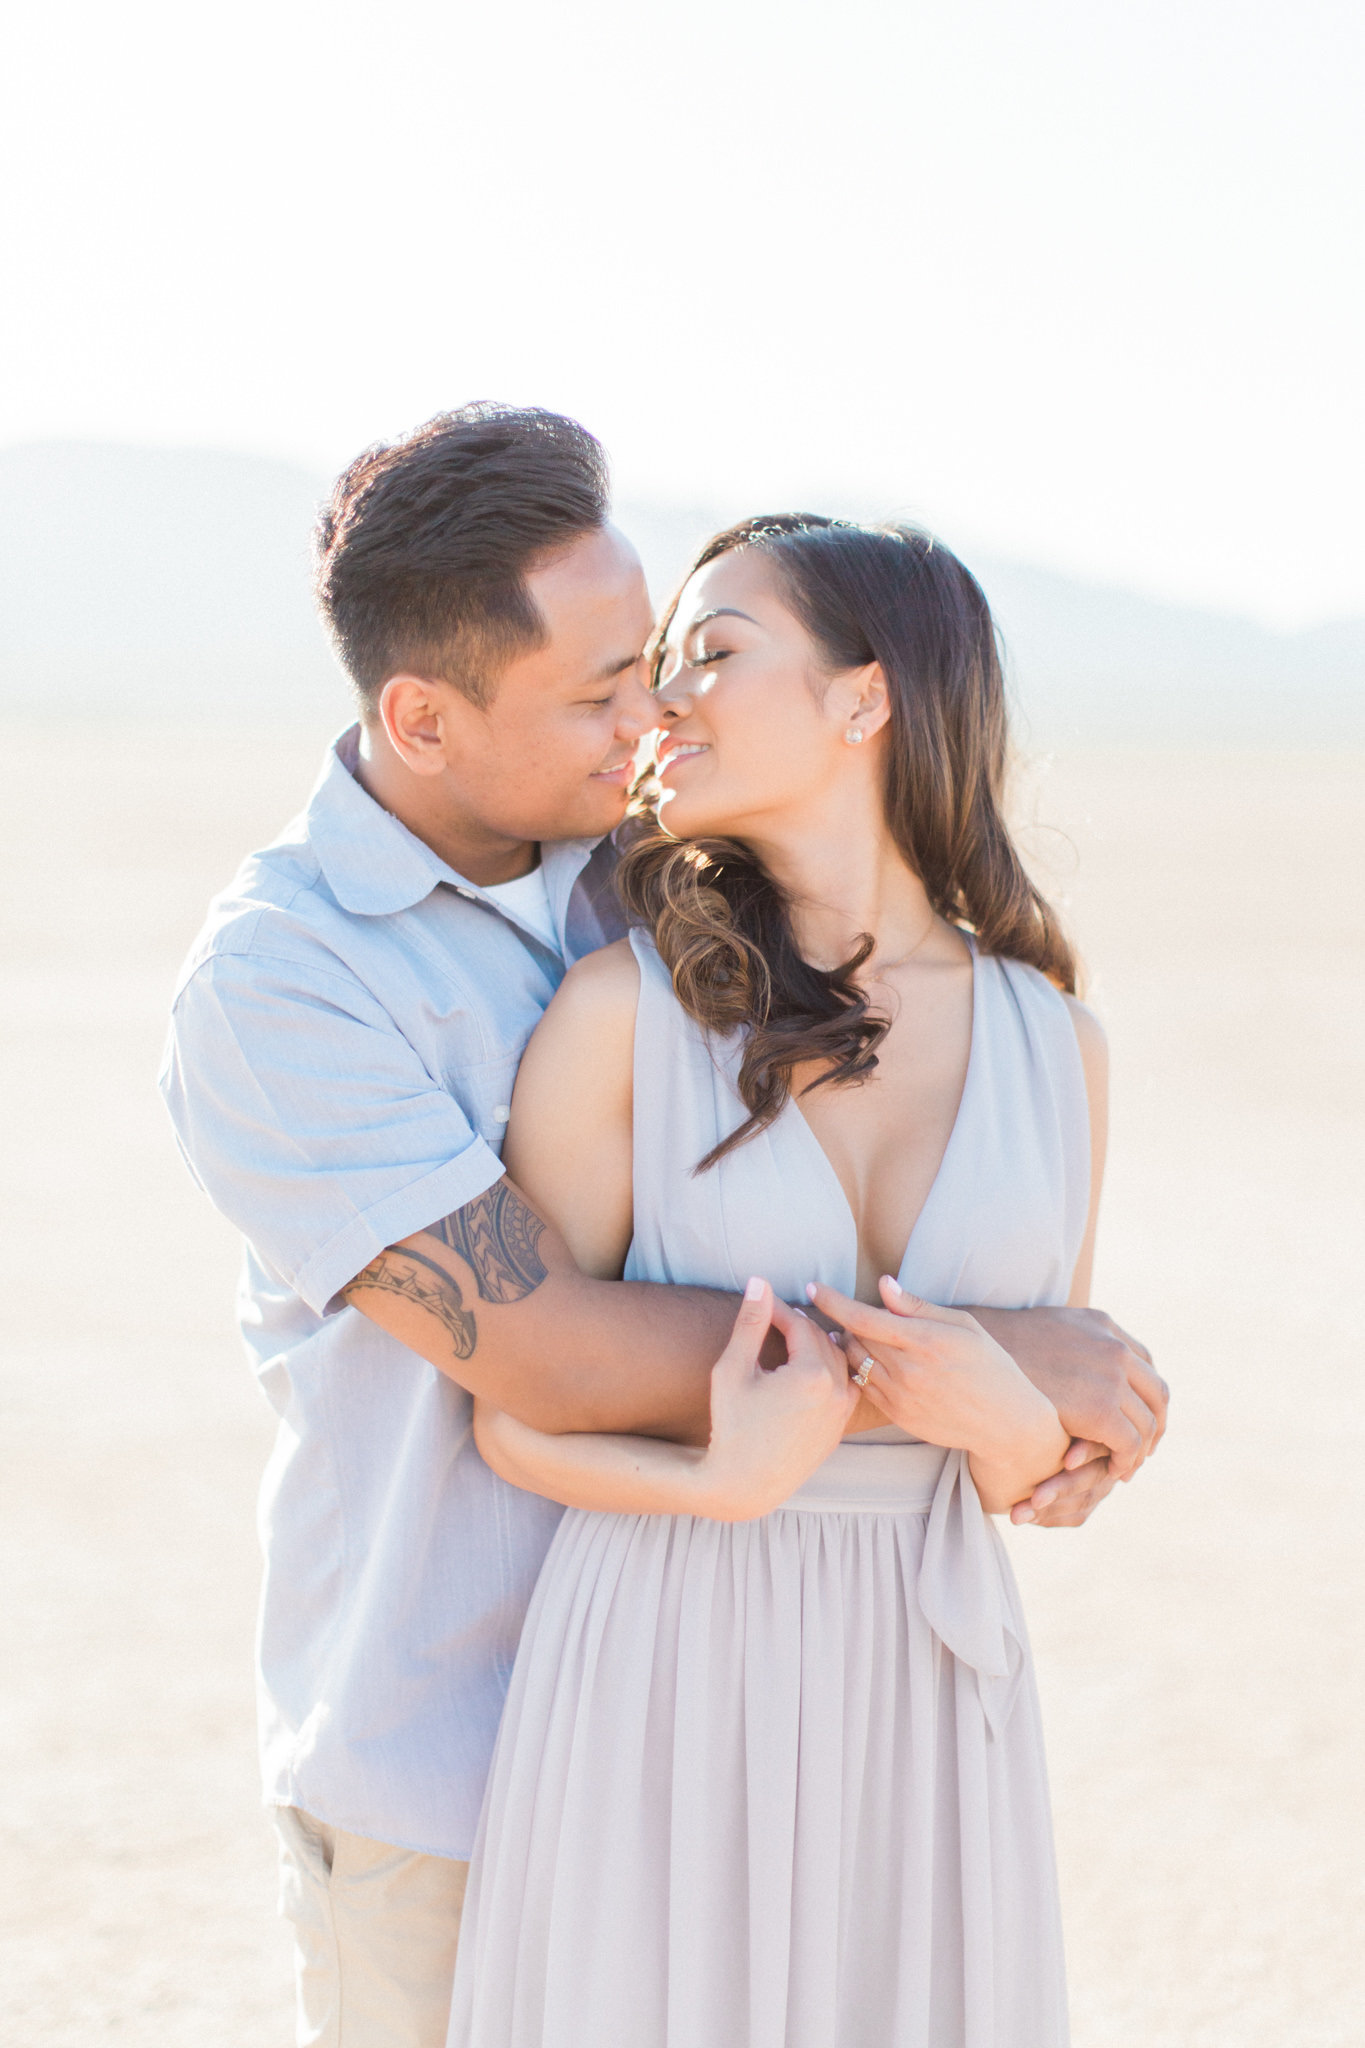 las-vegas-engagement-photographer-desert-4